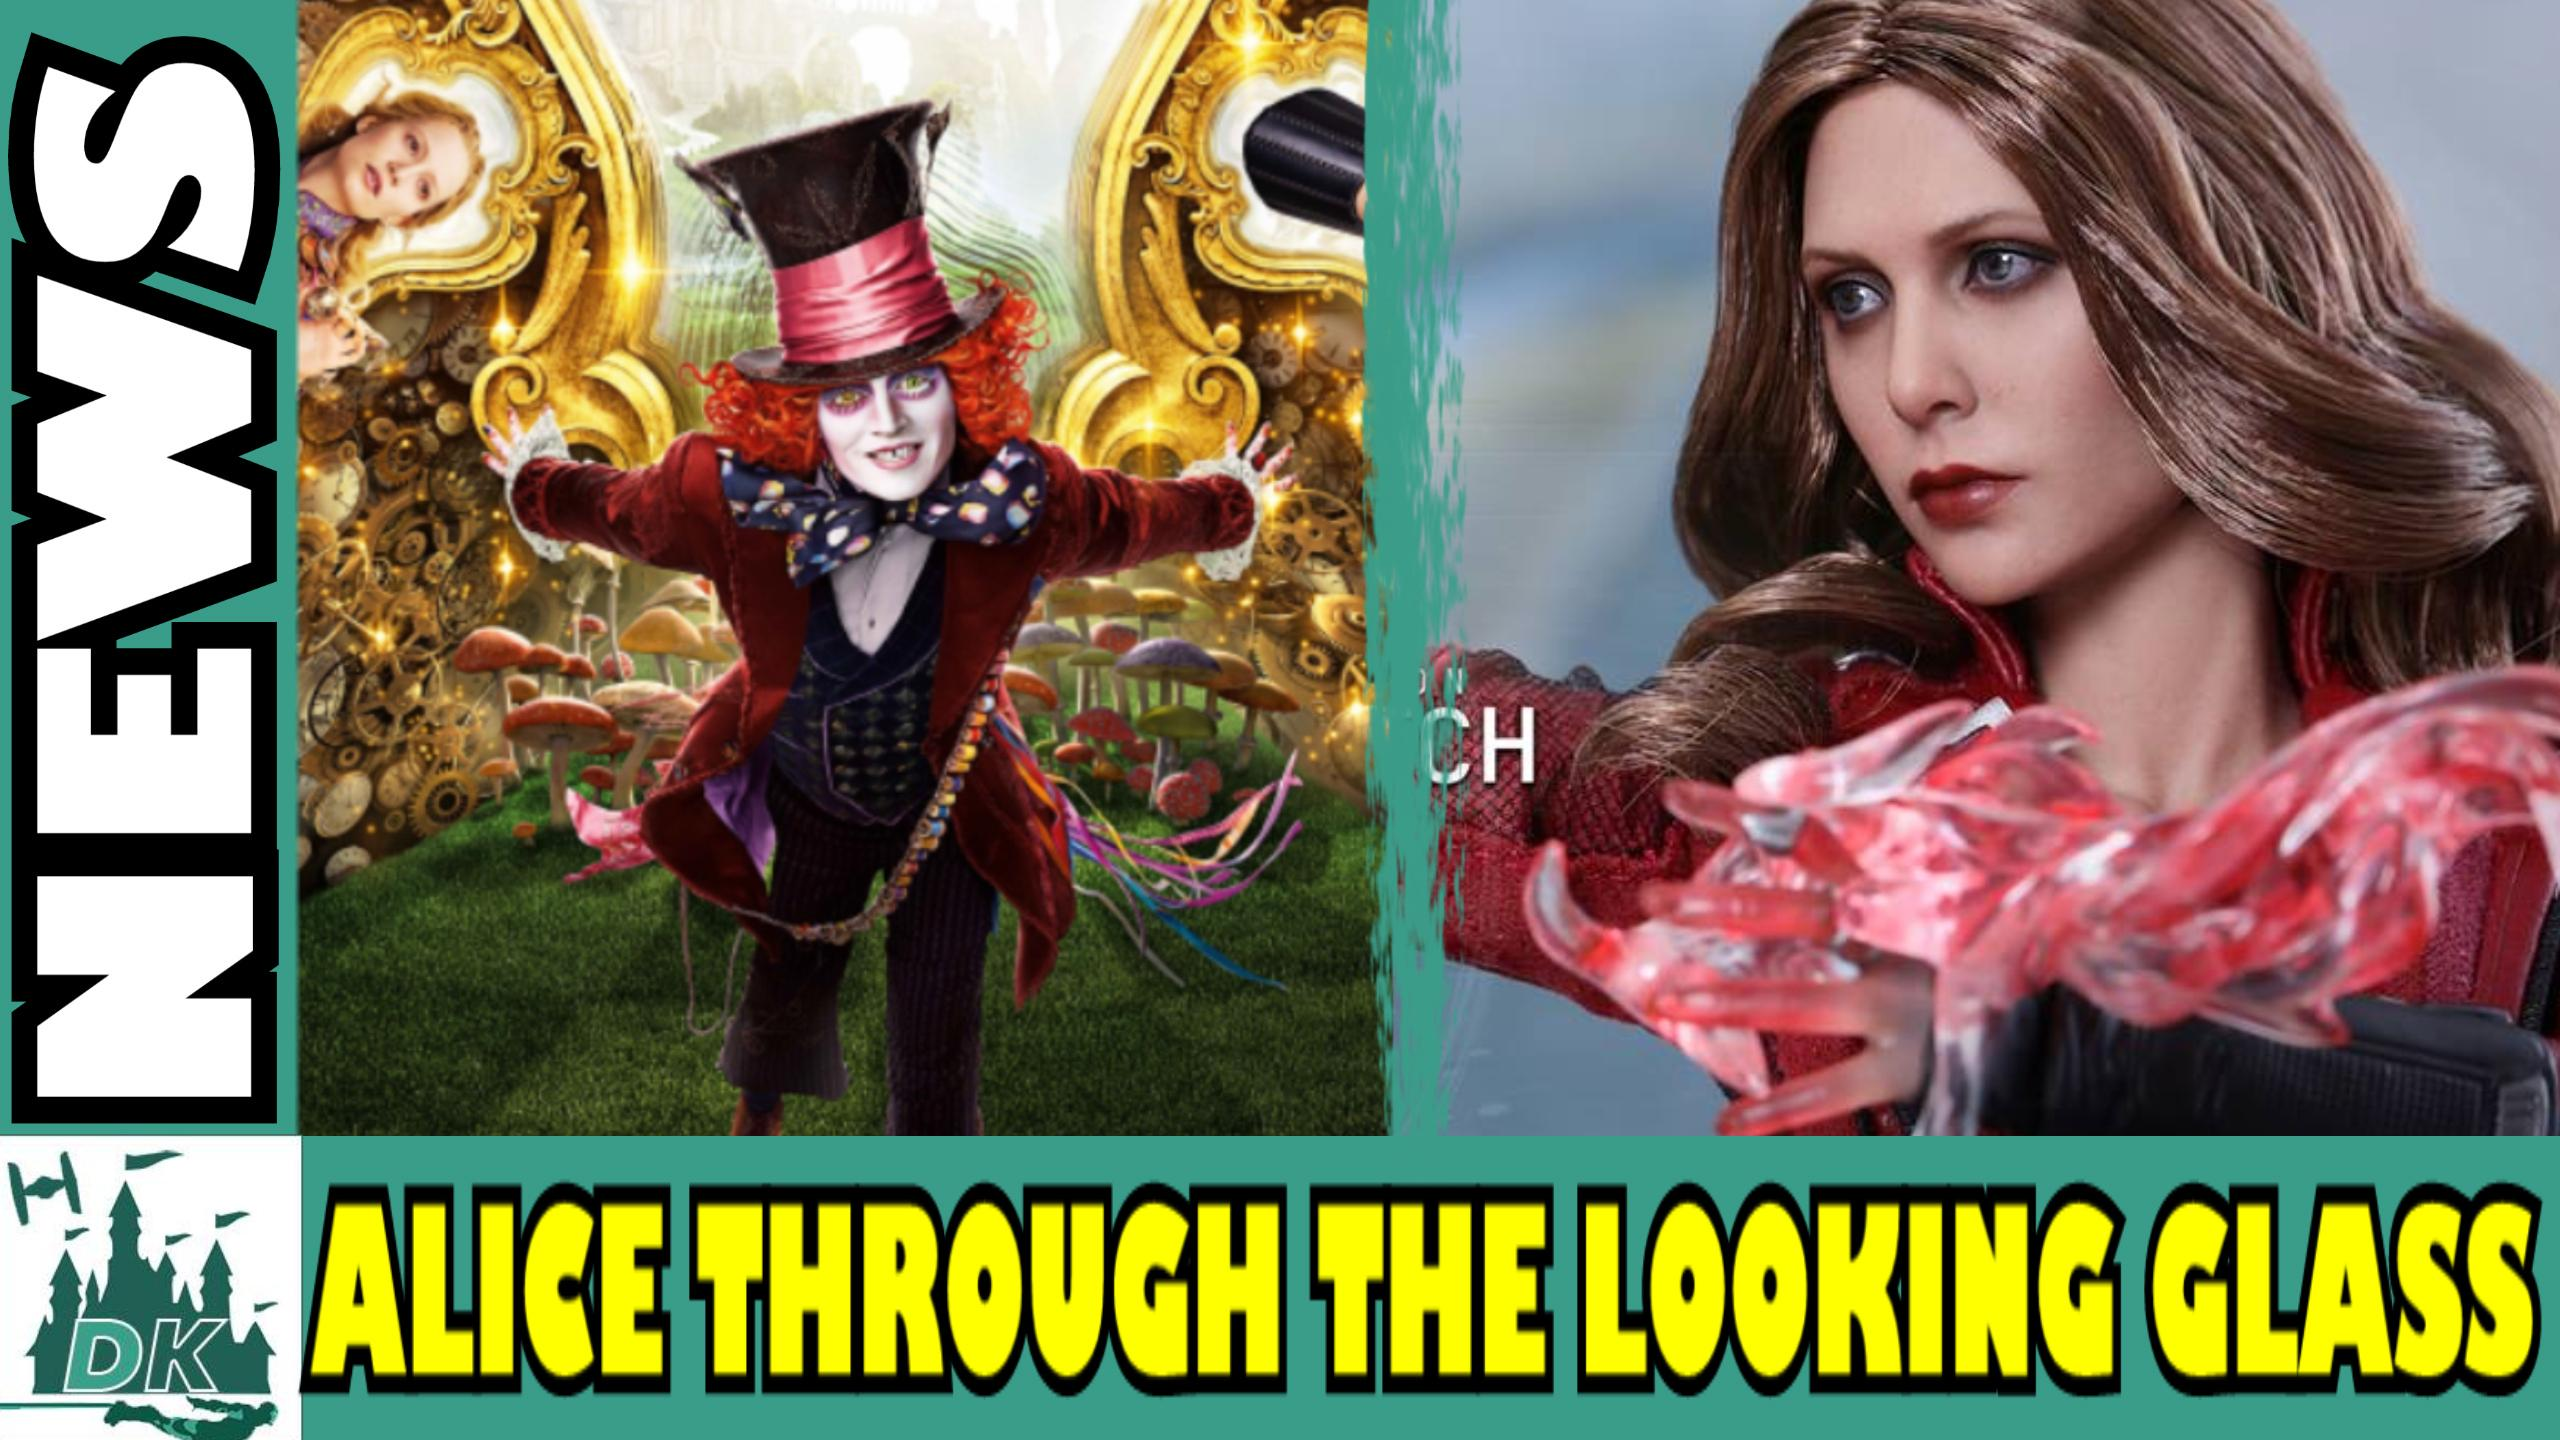 Alice Through The Looking Glass Disney Infinity Possible Release Date + Civil War Hot Toys | Daily News